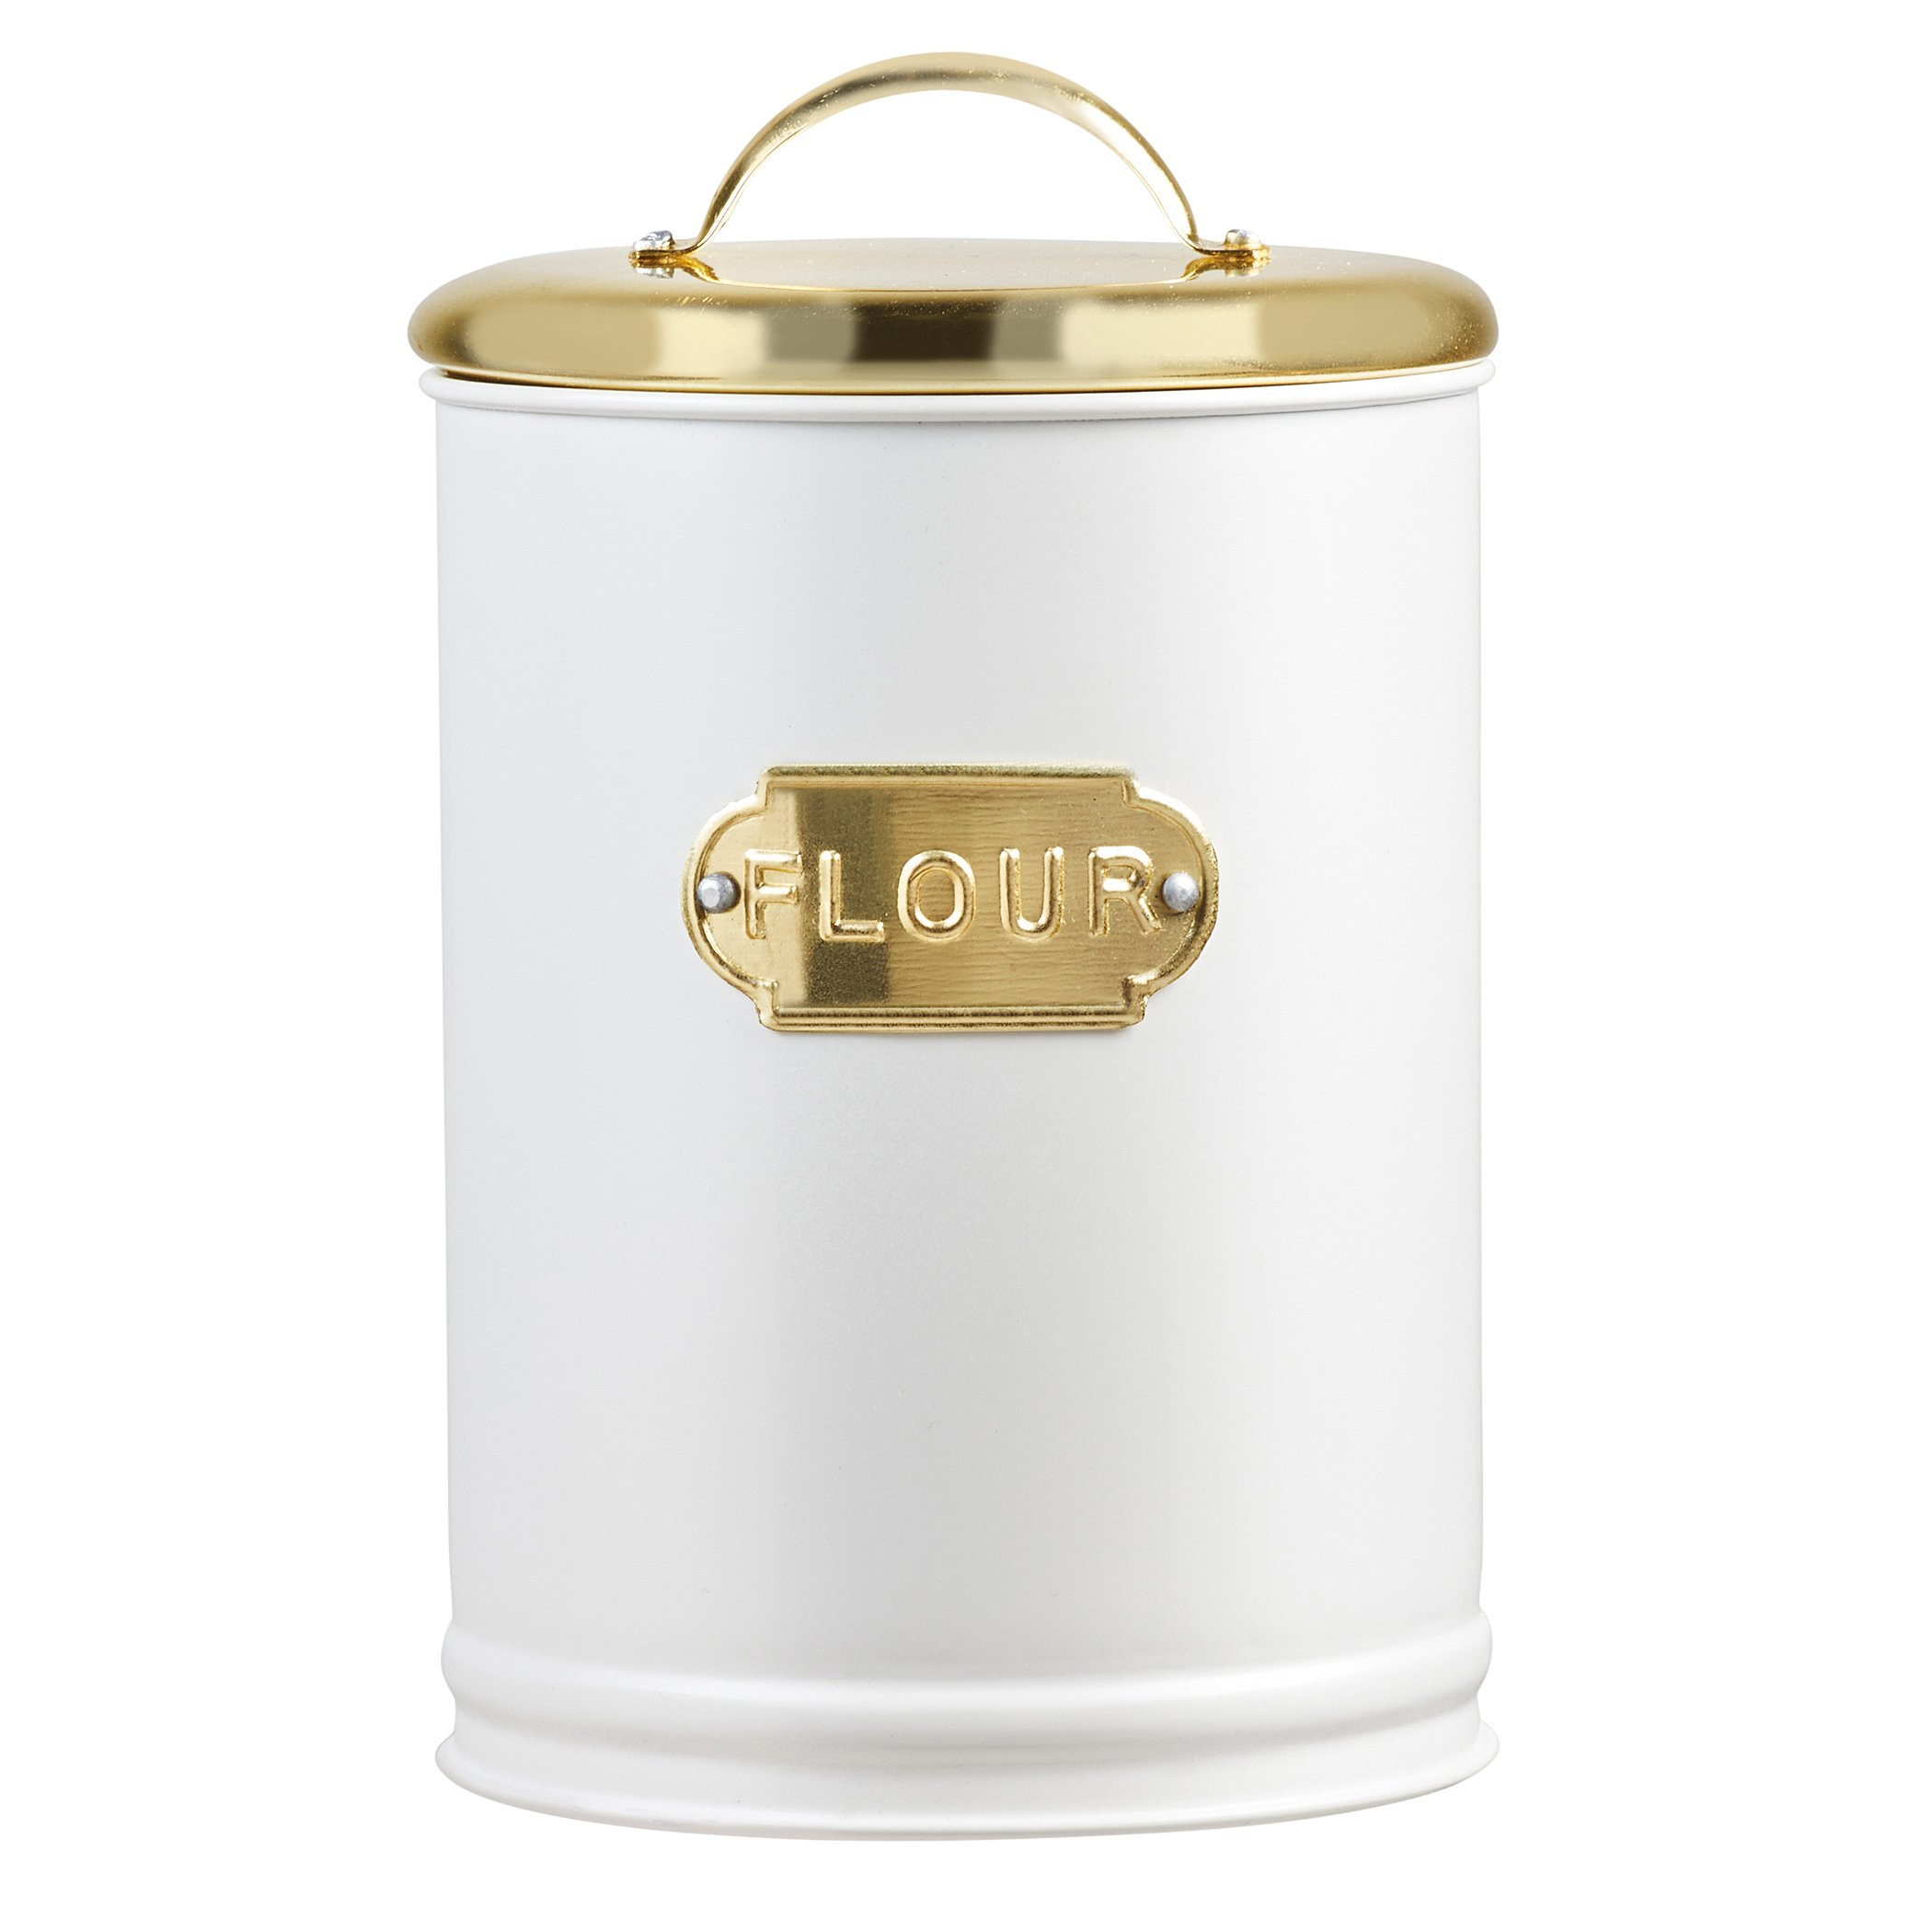 Amici Home, A5IP001R, Madison Collection Coffee Metal Storage Canister, Relief Label, Push Top Lid, Food Safe, Medium, 32 Ounces